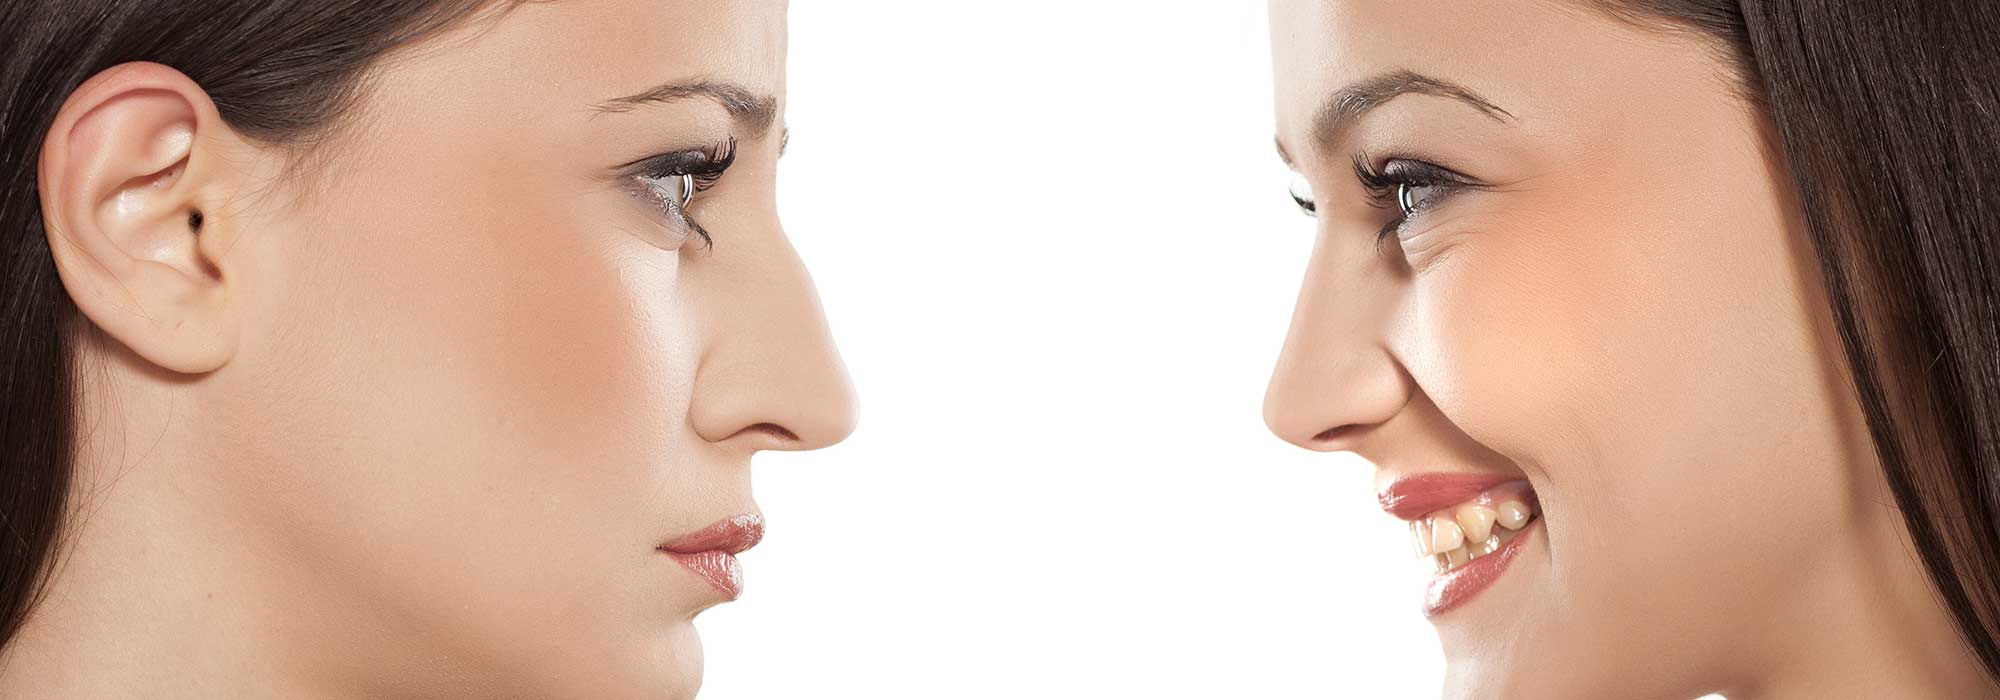 A before and after picture of a woman who received a rhinoplasty.